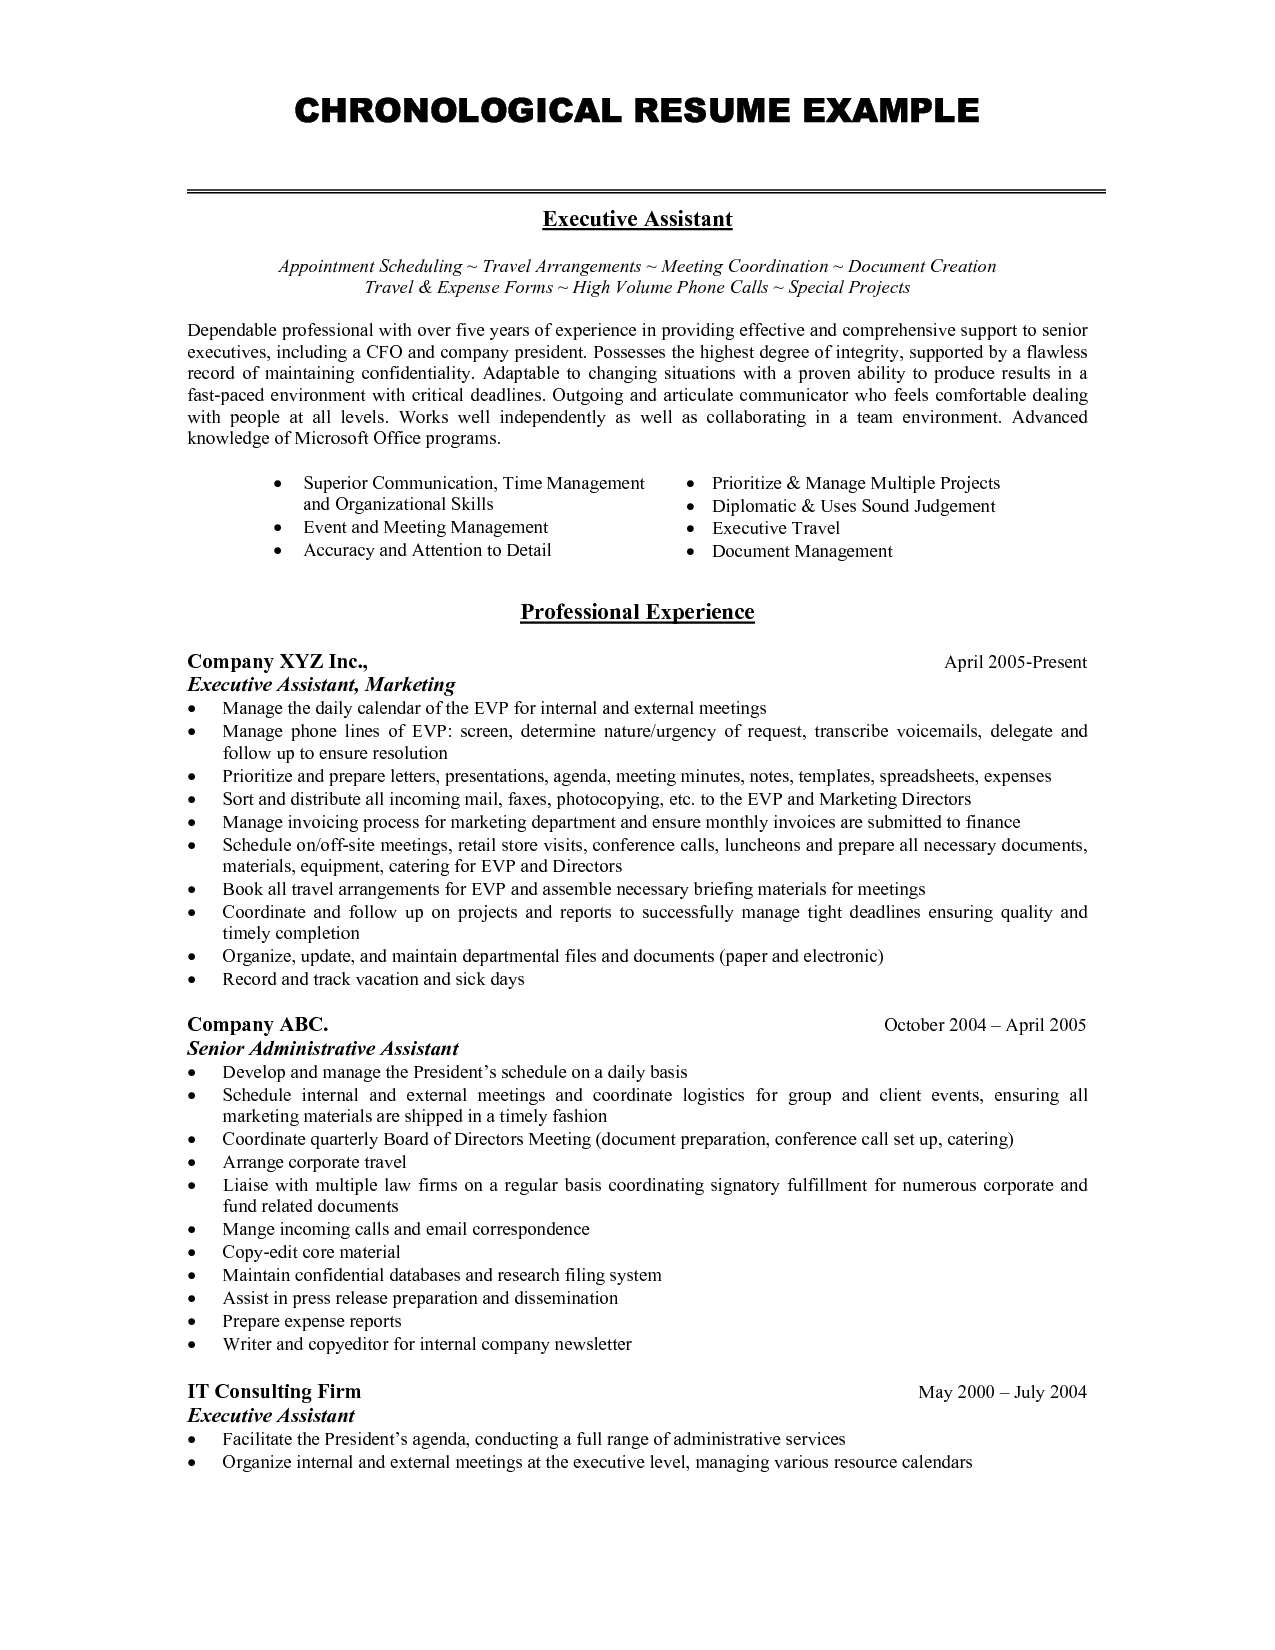 Top Ten Resume Format Best Marketing Resumes Task List Templates